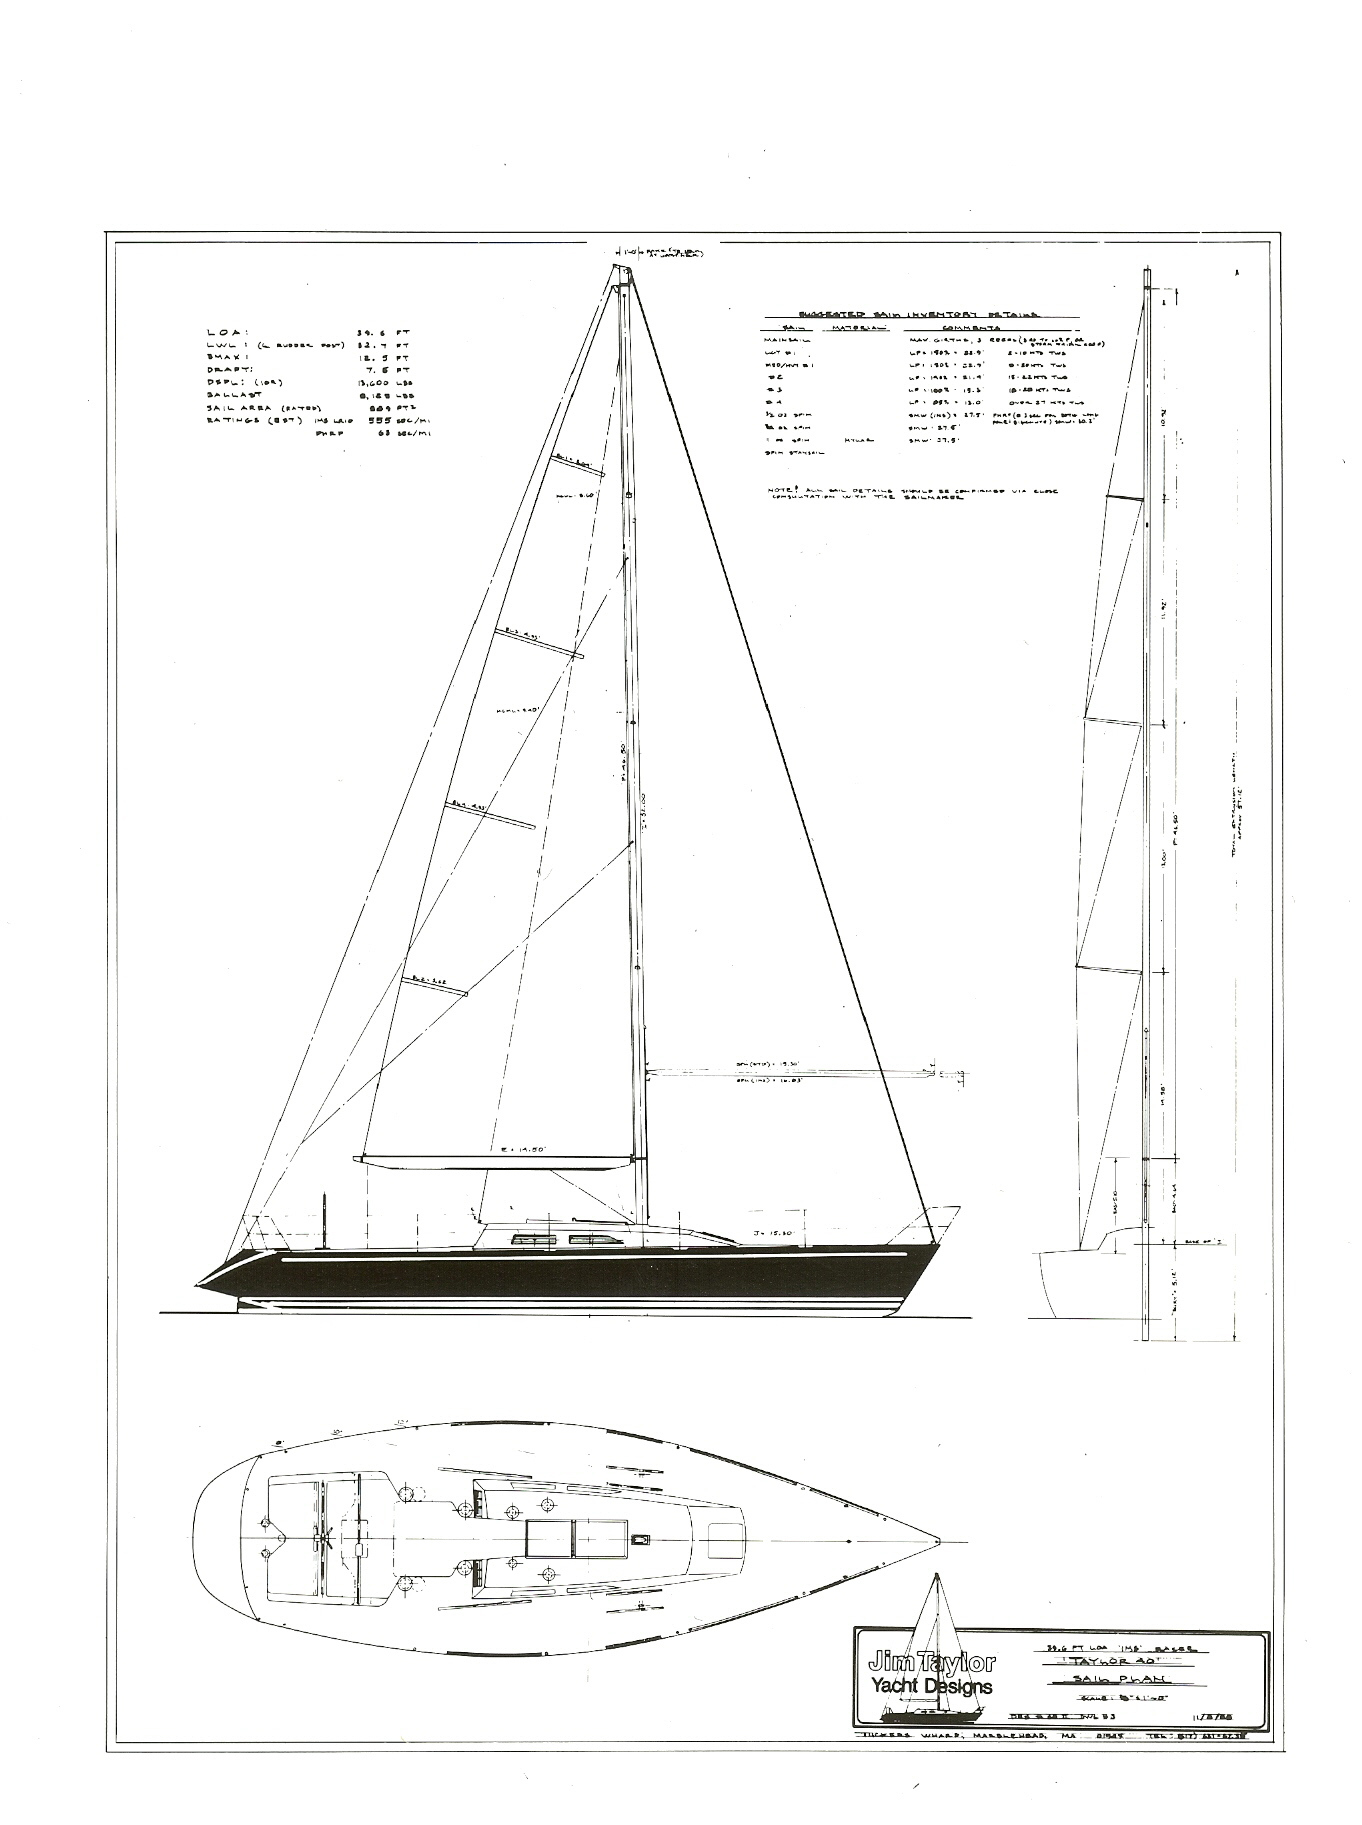 C:\Users\Jim Taylor\Desktop\JTYD\JT_Promo\WebSite\2013\Designs\Racing\68_T40's\Sailplan_080122.jpg